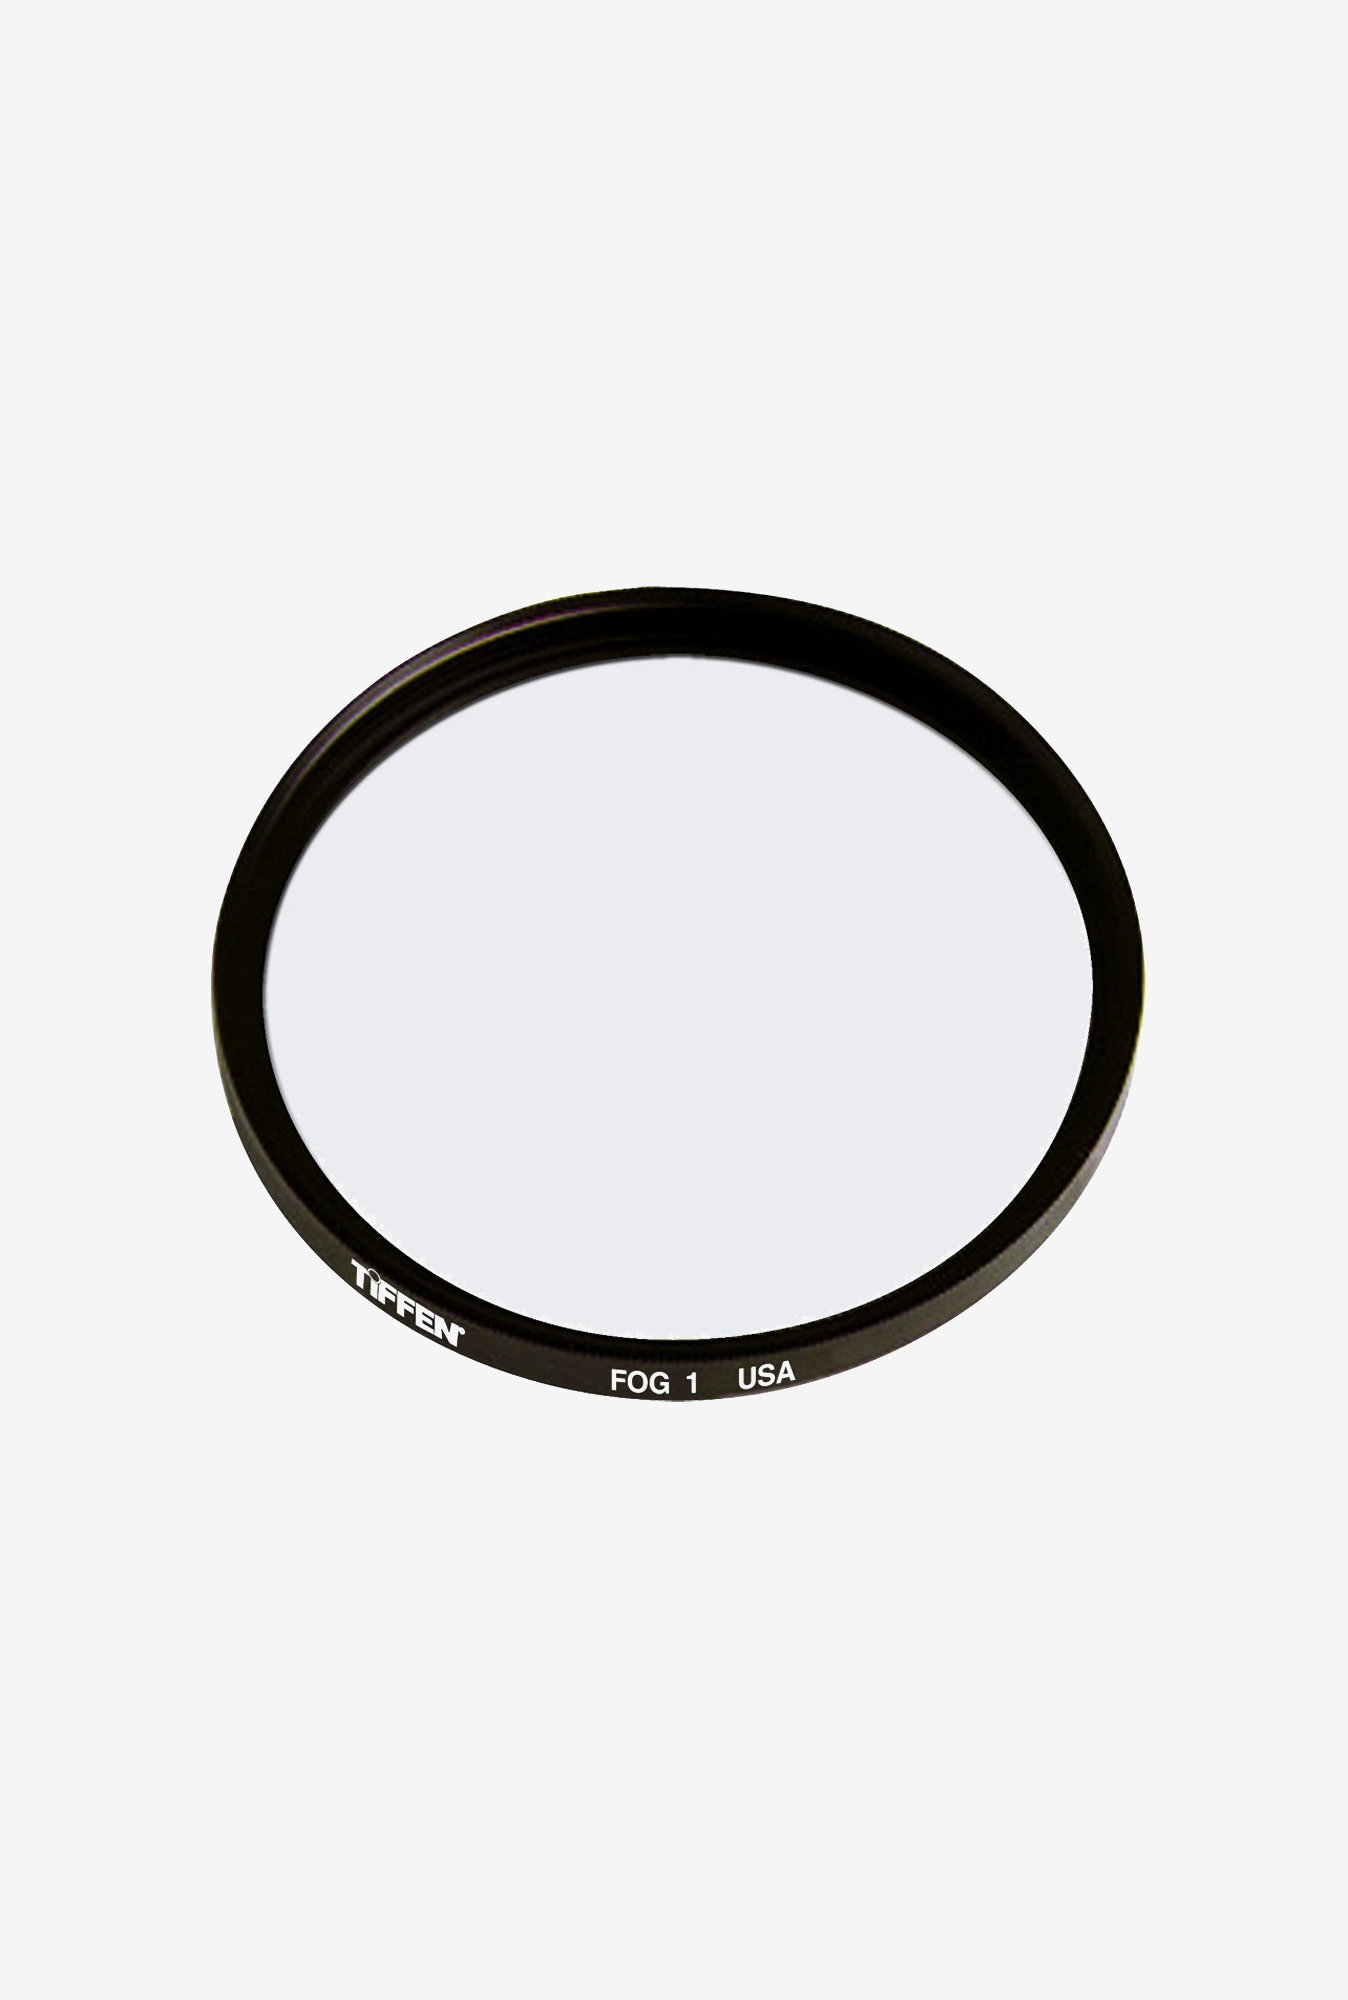 Tiffen 55F1 55mm Fog 1 Filter (Black)